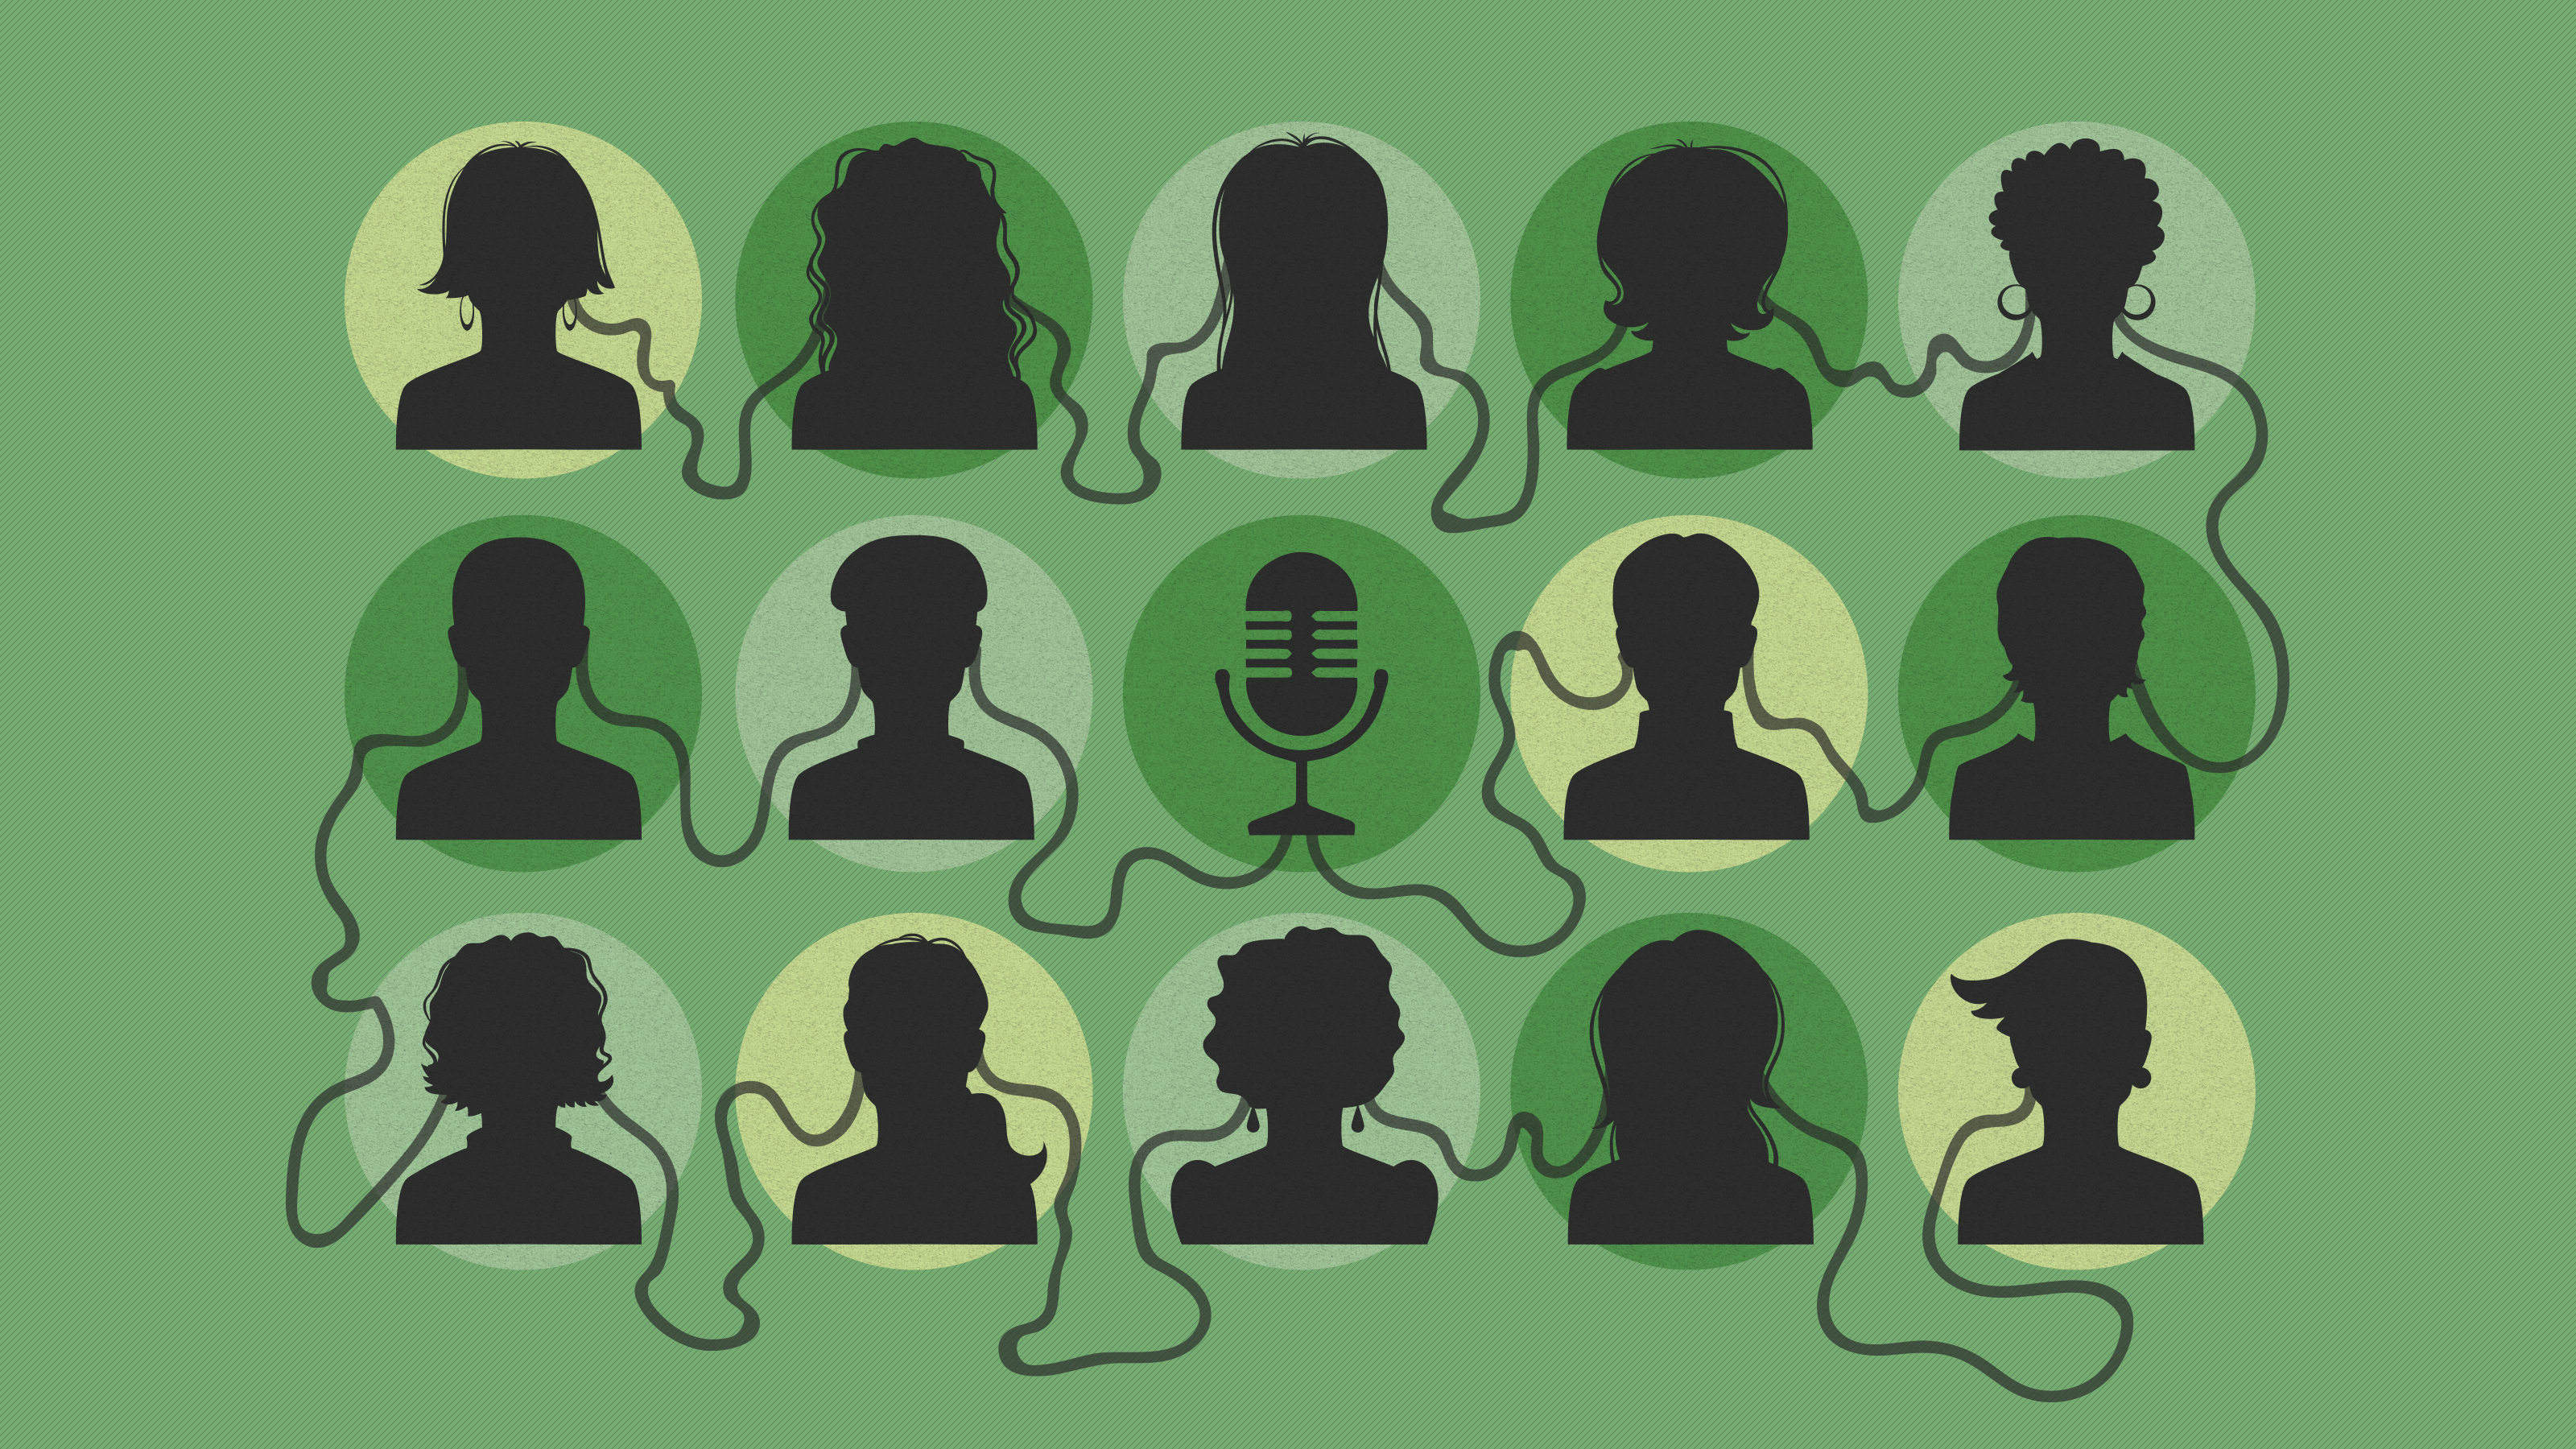 Abstract image of podcast audience